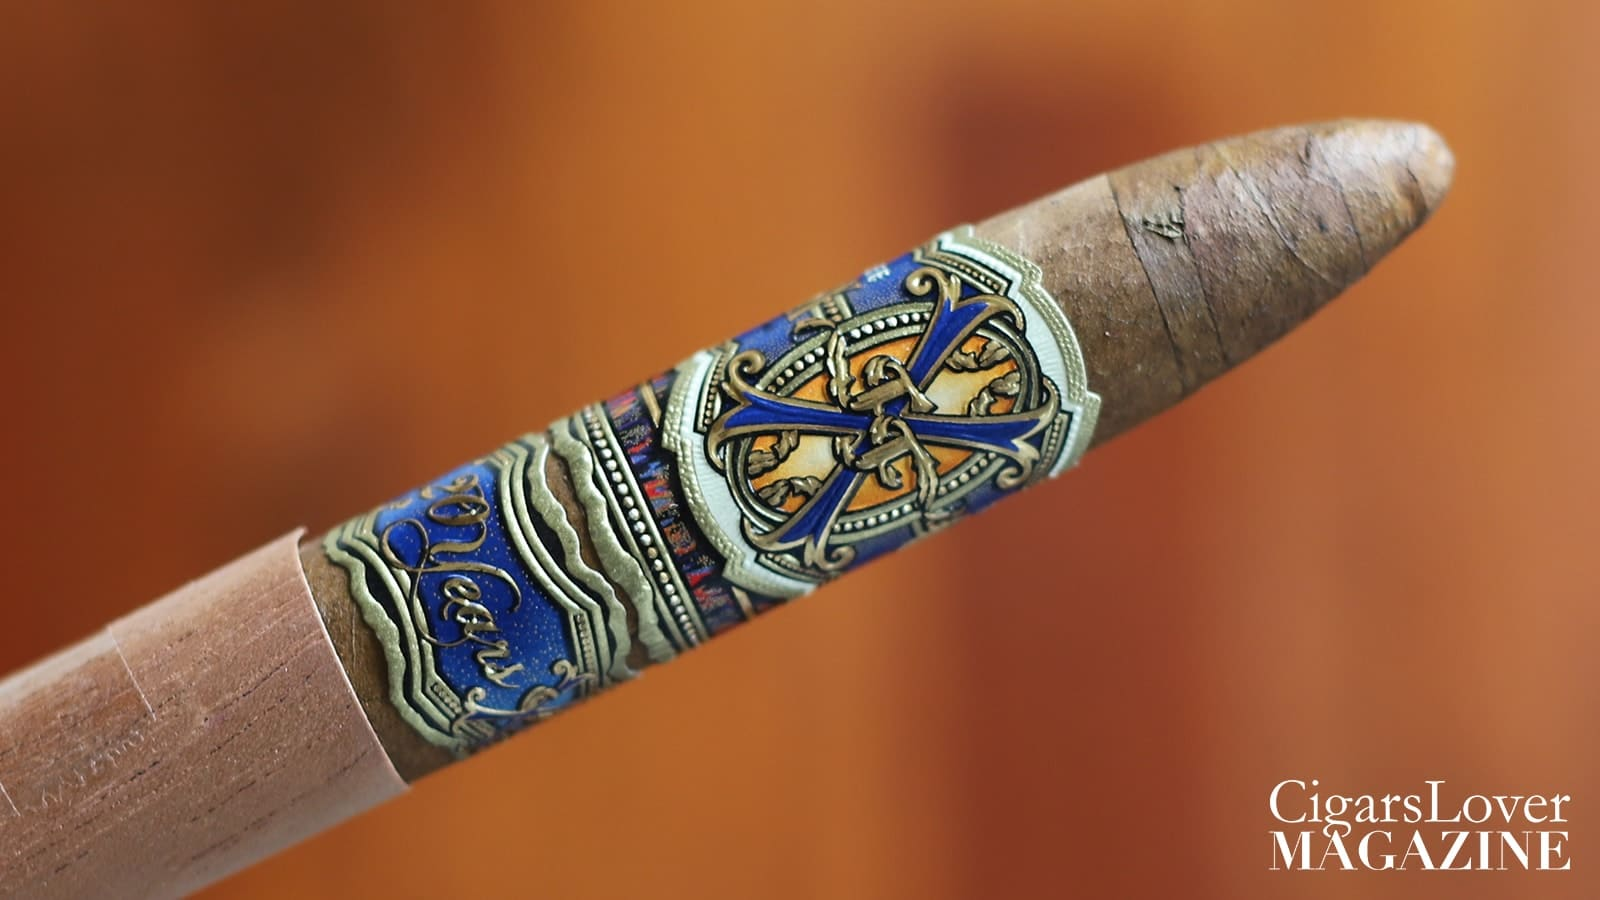 Arturo Fuente OpusX 20 Years Power of the Dream